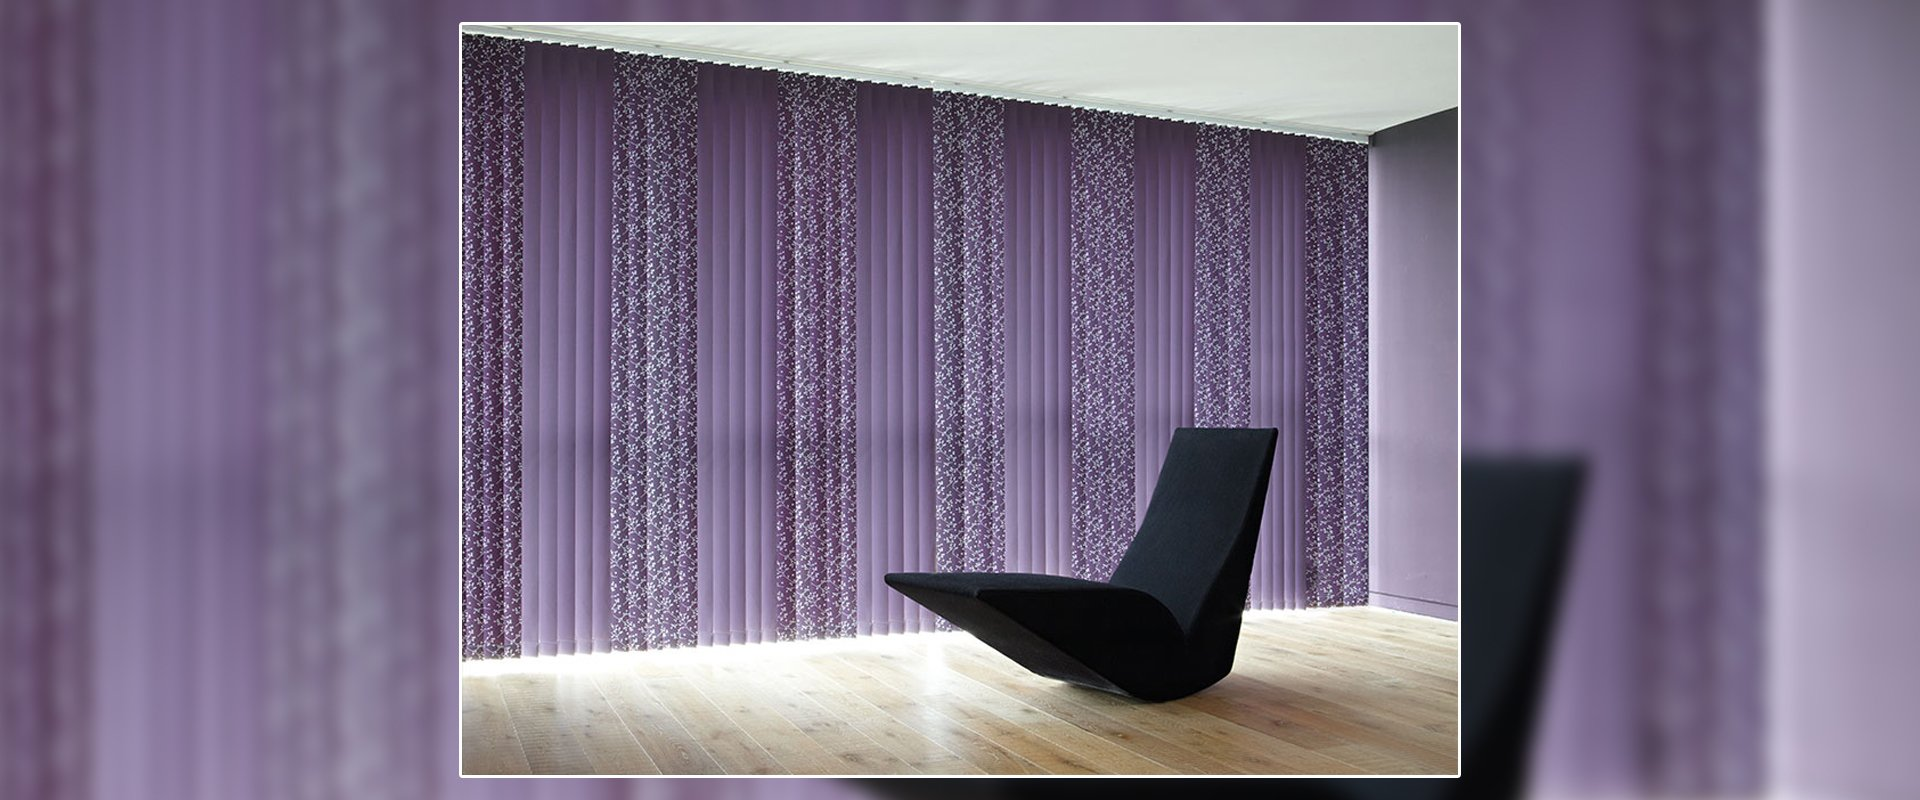 Purple colour blinds